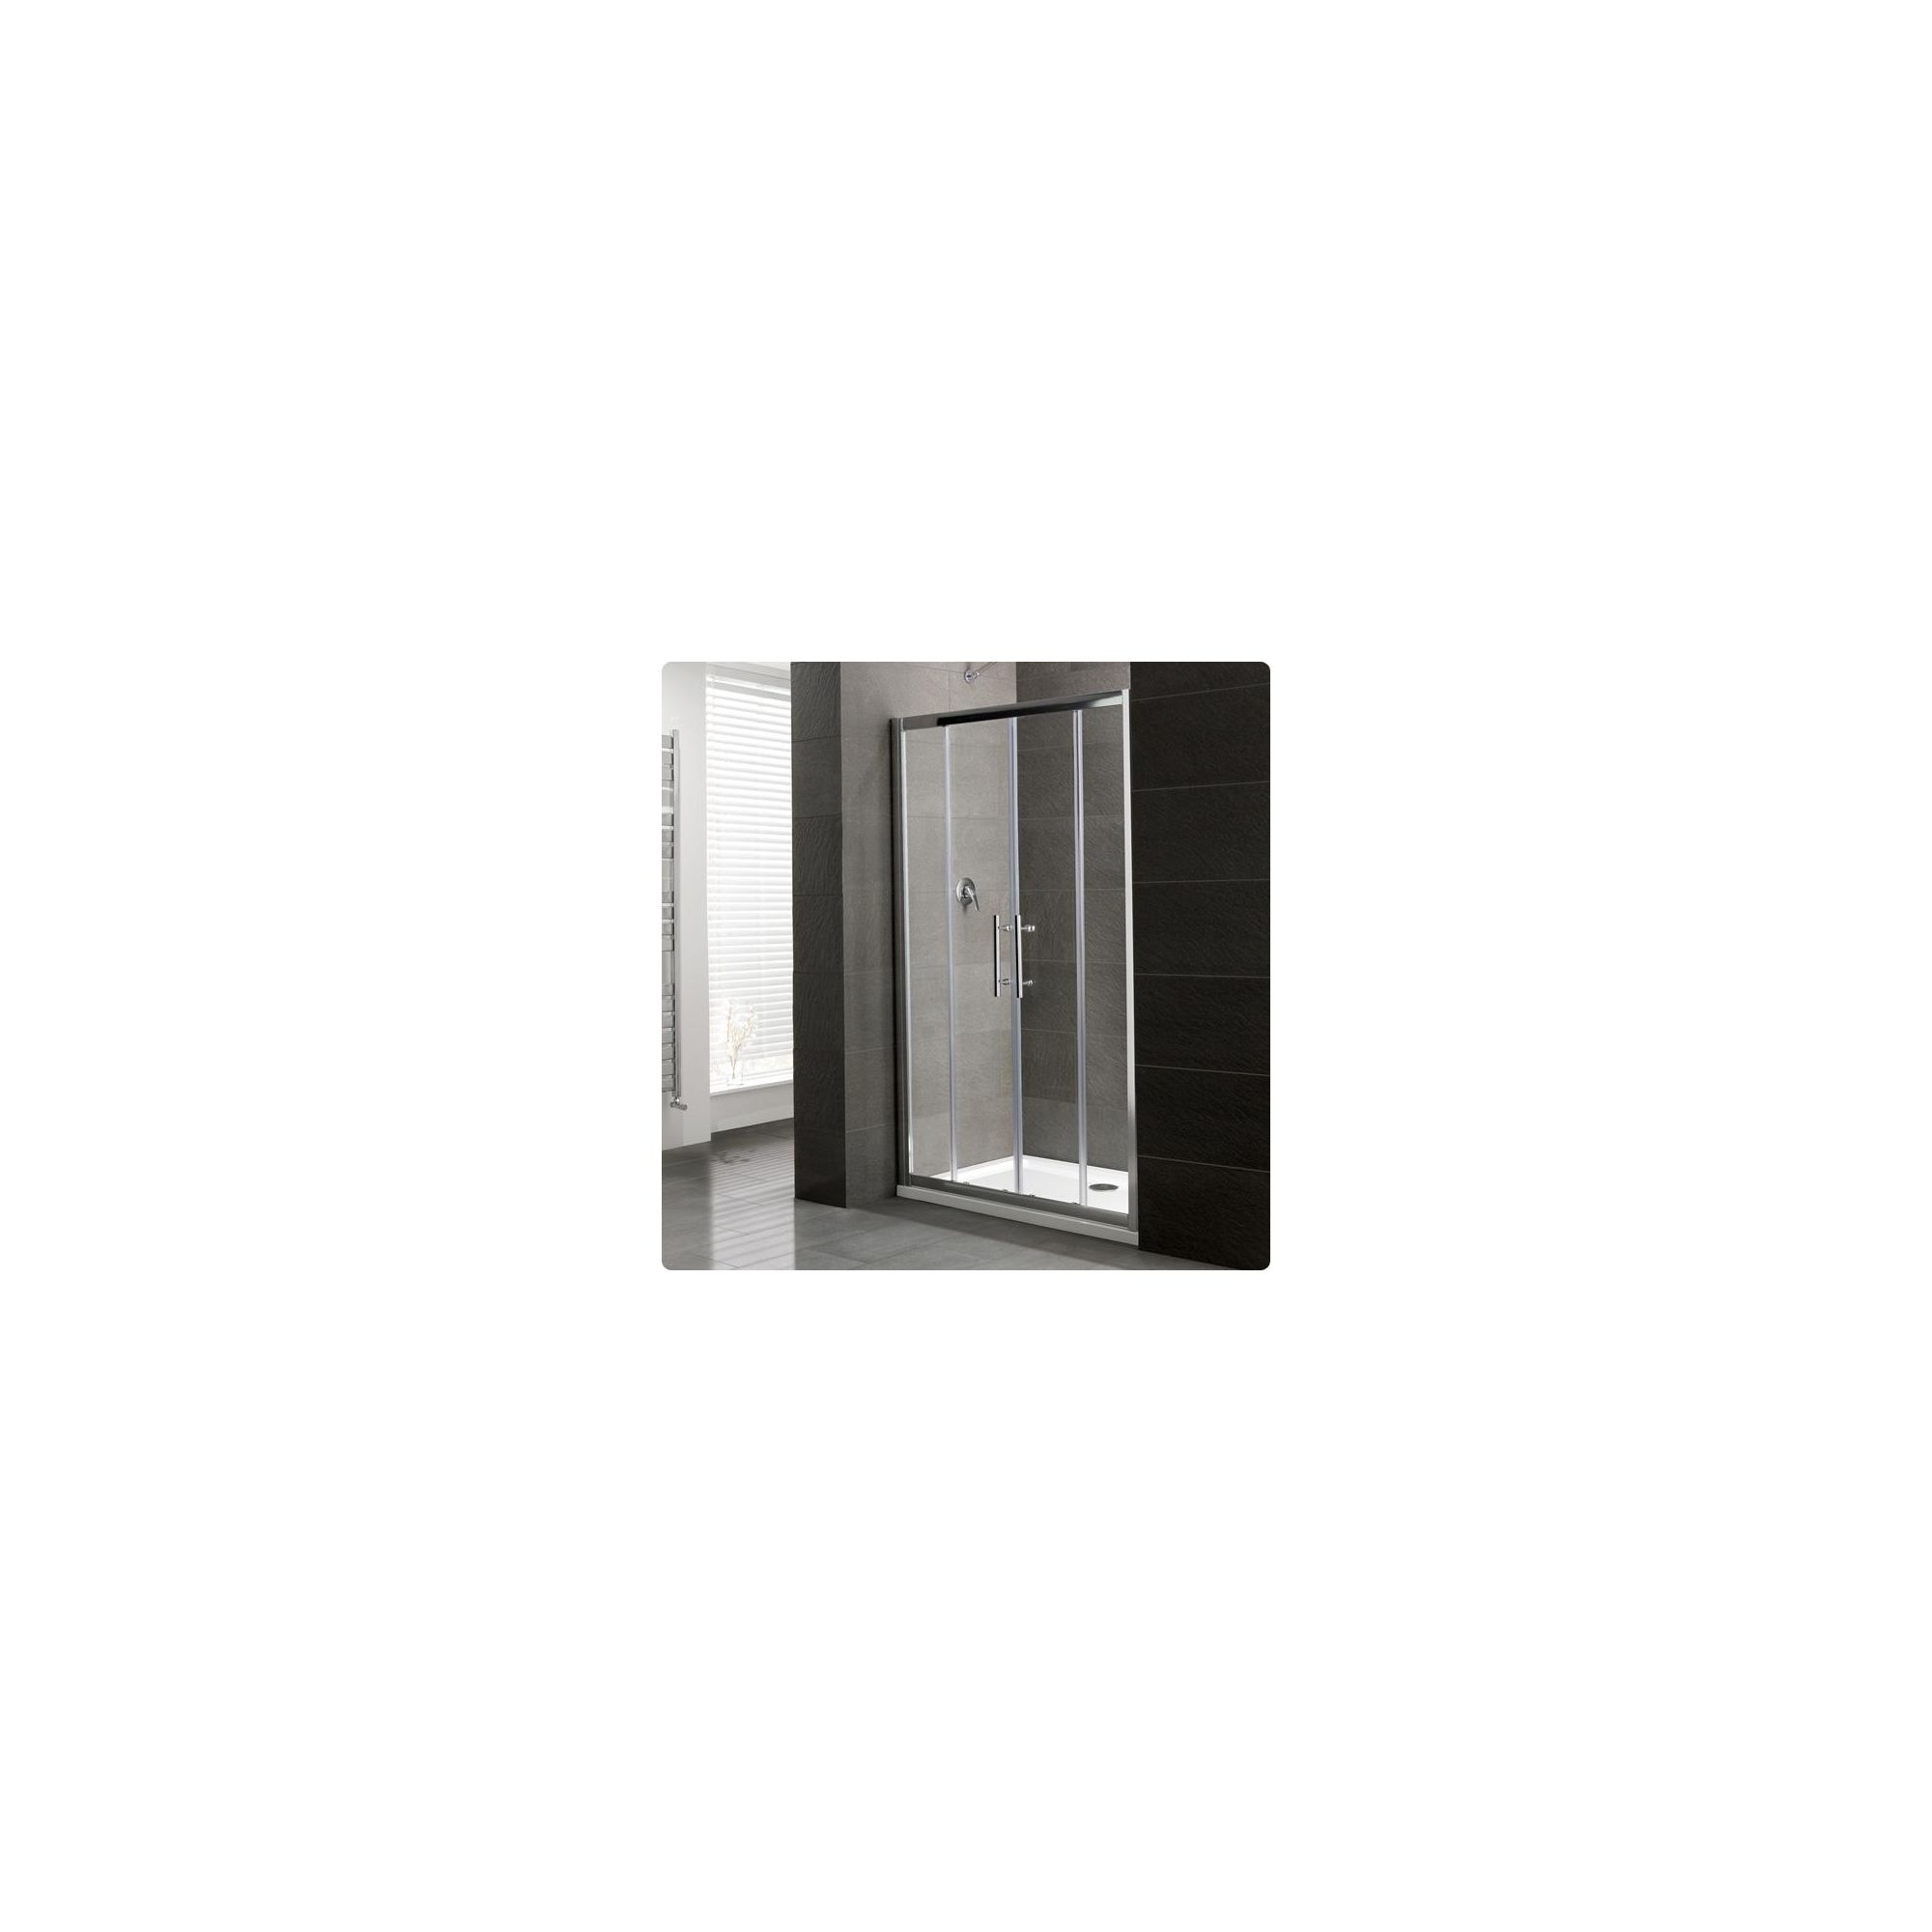 Duchy Select Silver Double Sliding Door Shower Enclosure, 1200mm x 800mm, Standard Tray, 6mm Glass at Tesco Direct